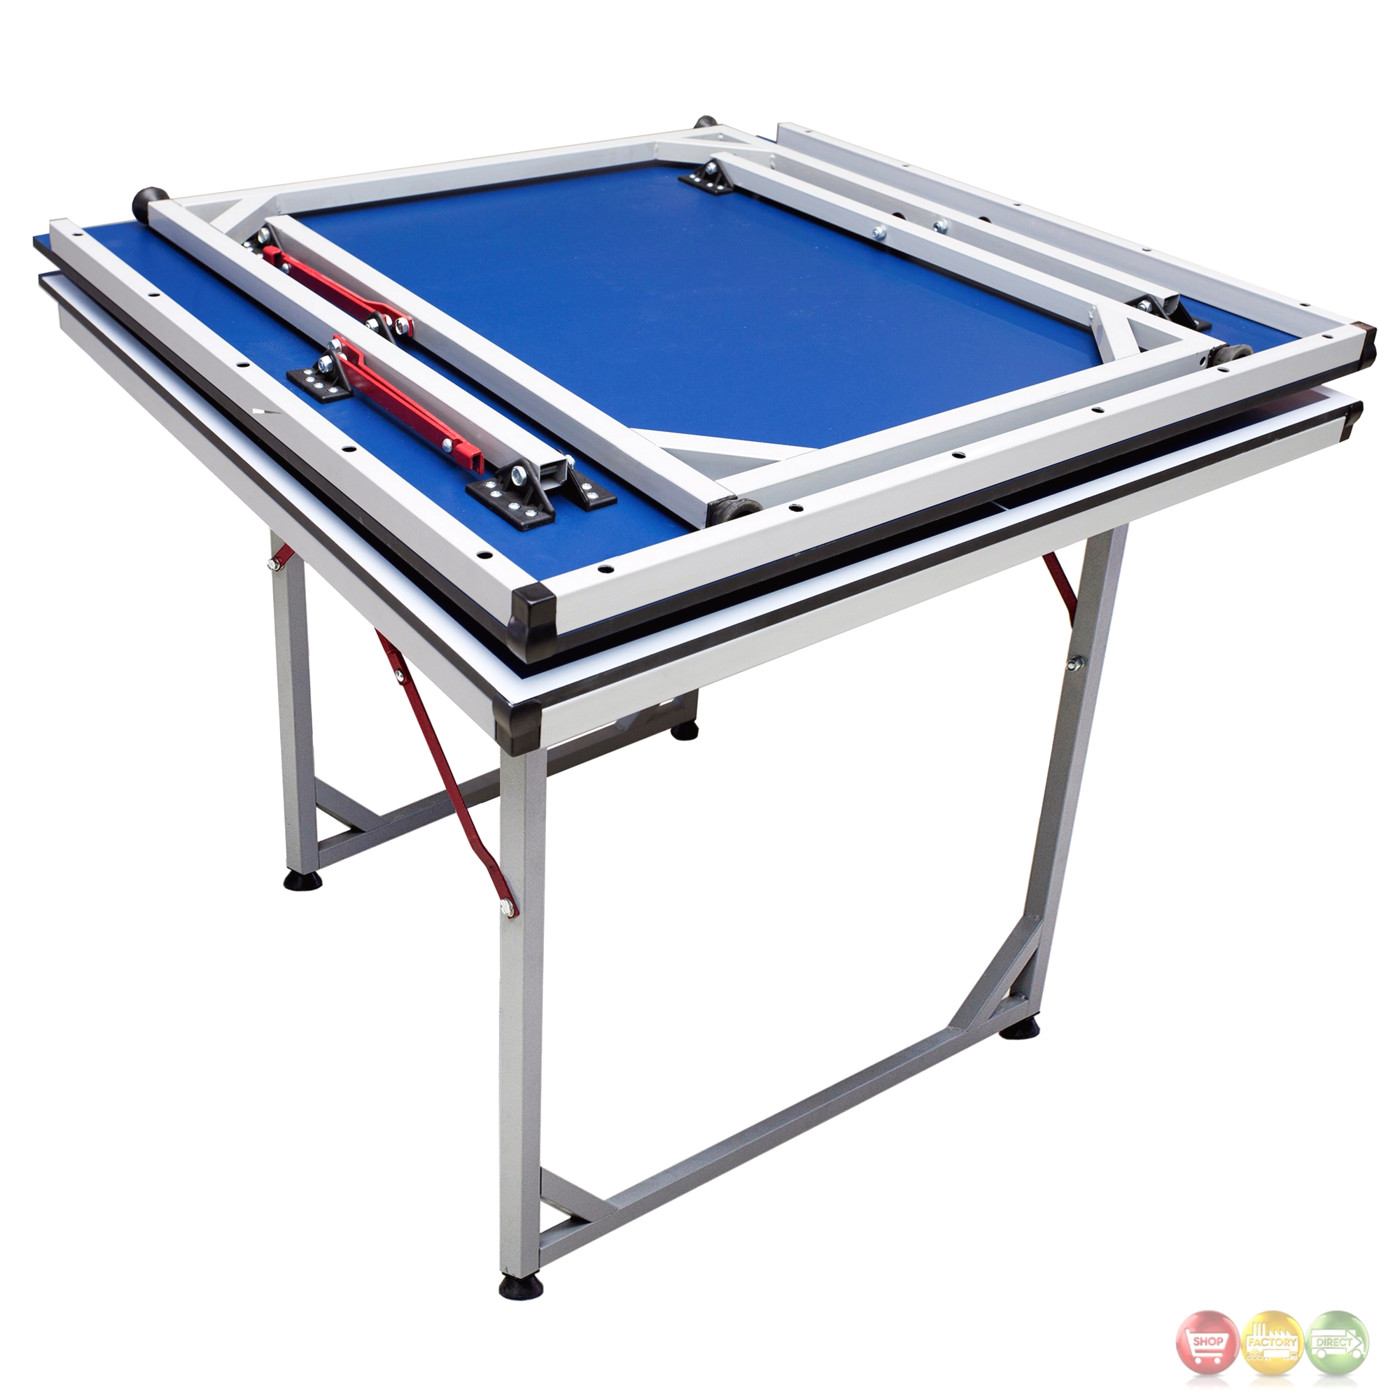 Reflex Deep Blue 6 Ft Folding Table Tennis Game Table With